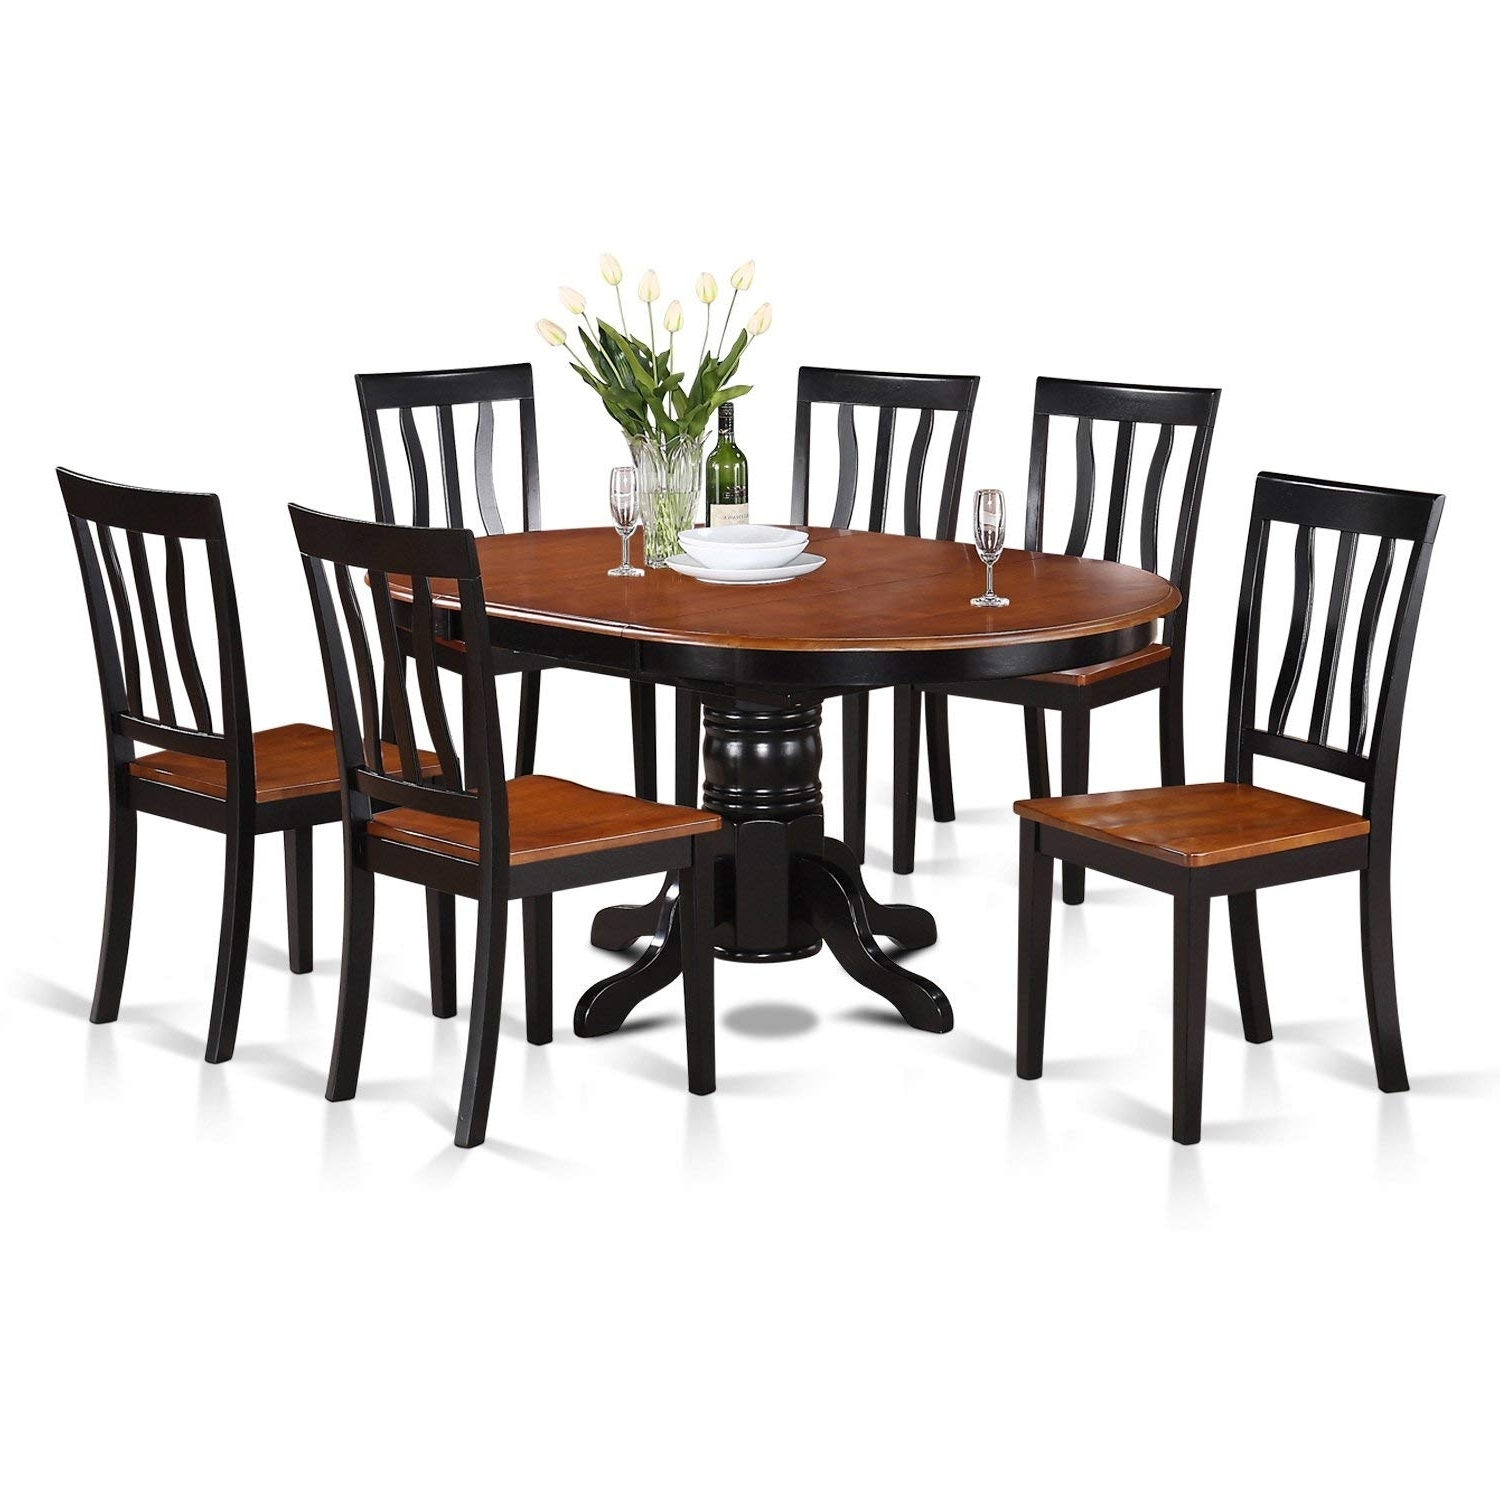 Most Current Dining Tables Chairs Within Amazon: East West Furniture Avat7 Blk W 7 Piece Dining Table Set (View 18 of 25)